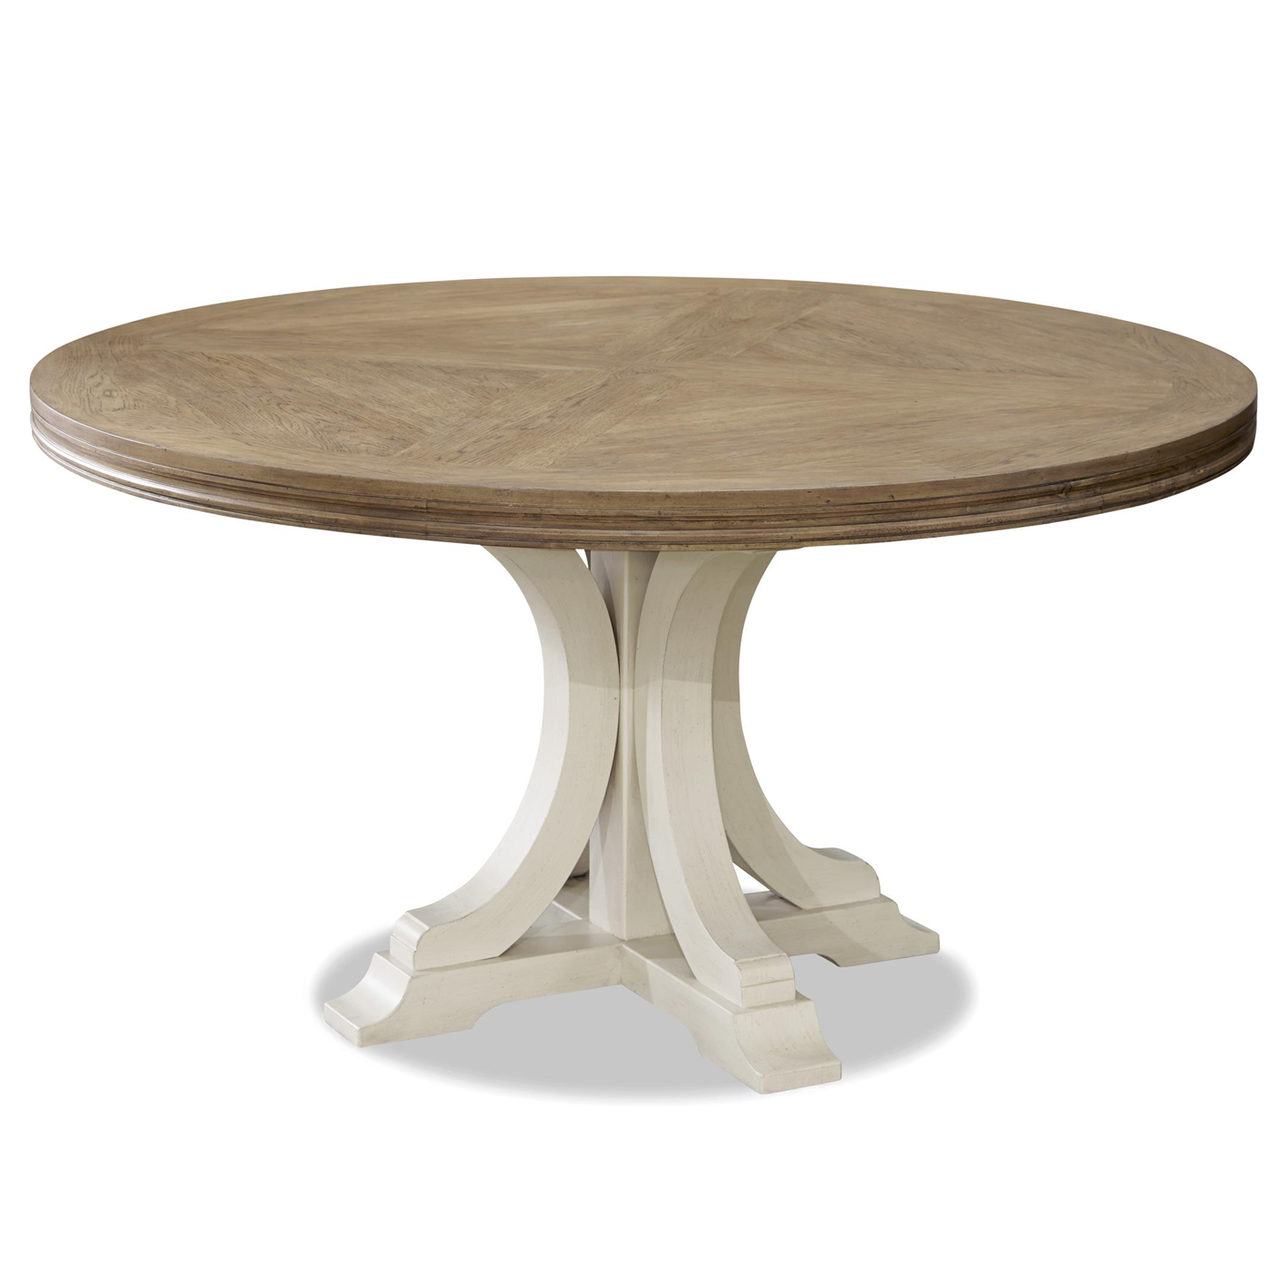 French modern white wood pedestal round dining table 58 for White round dining table